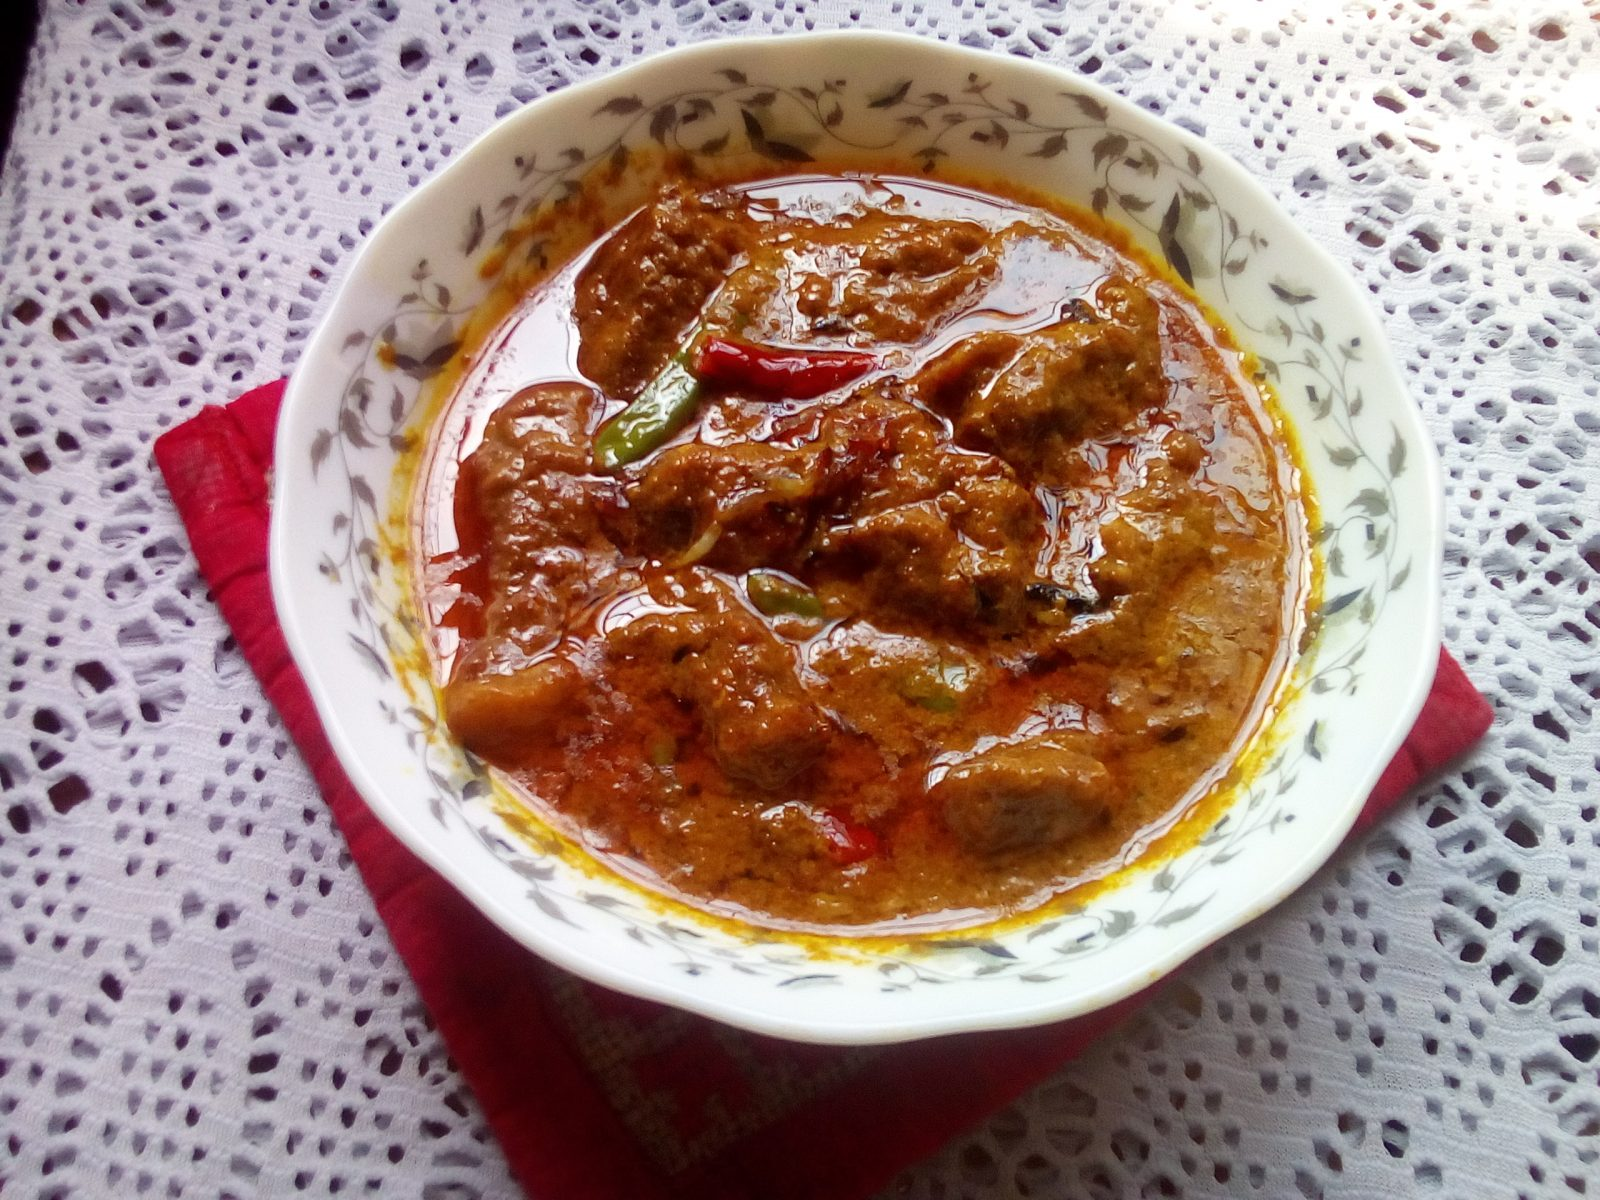 Beef Rezala (chef special) from Sompurna Rannaghor